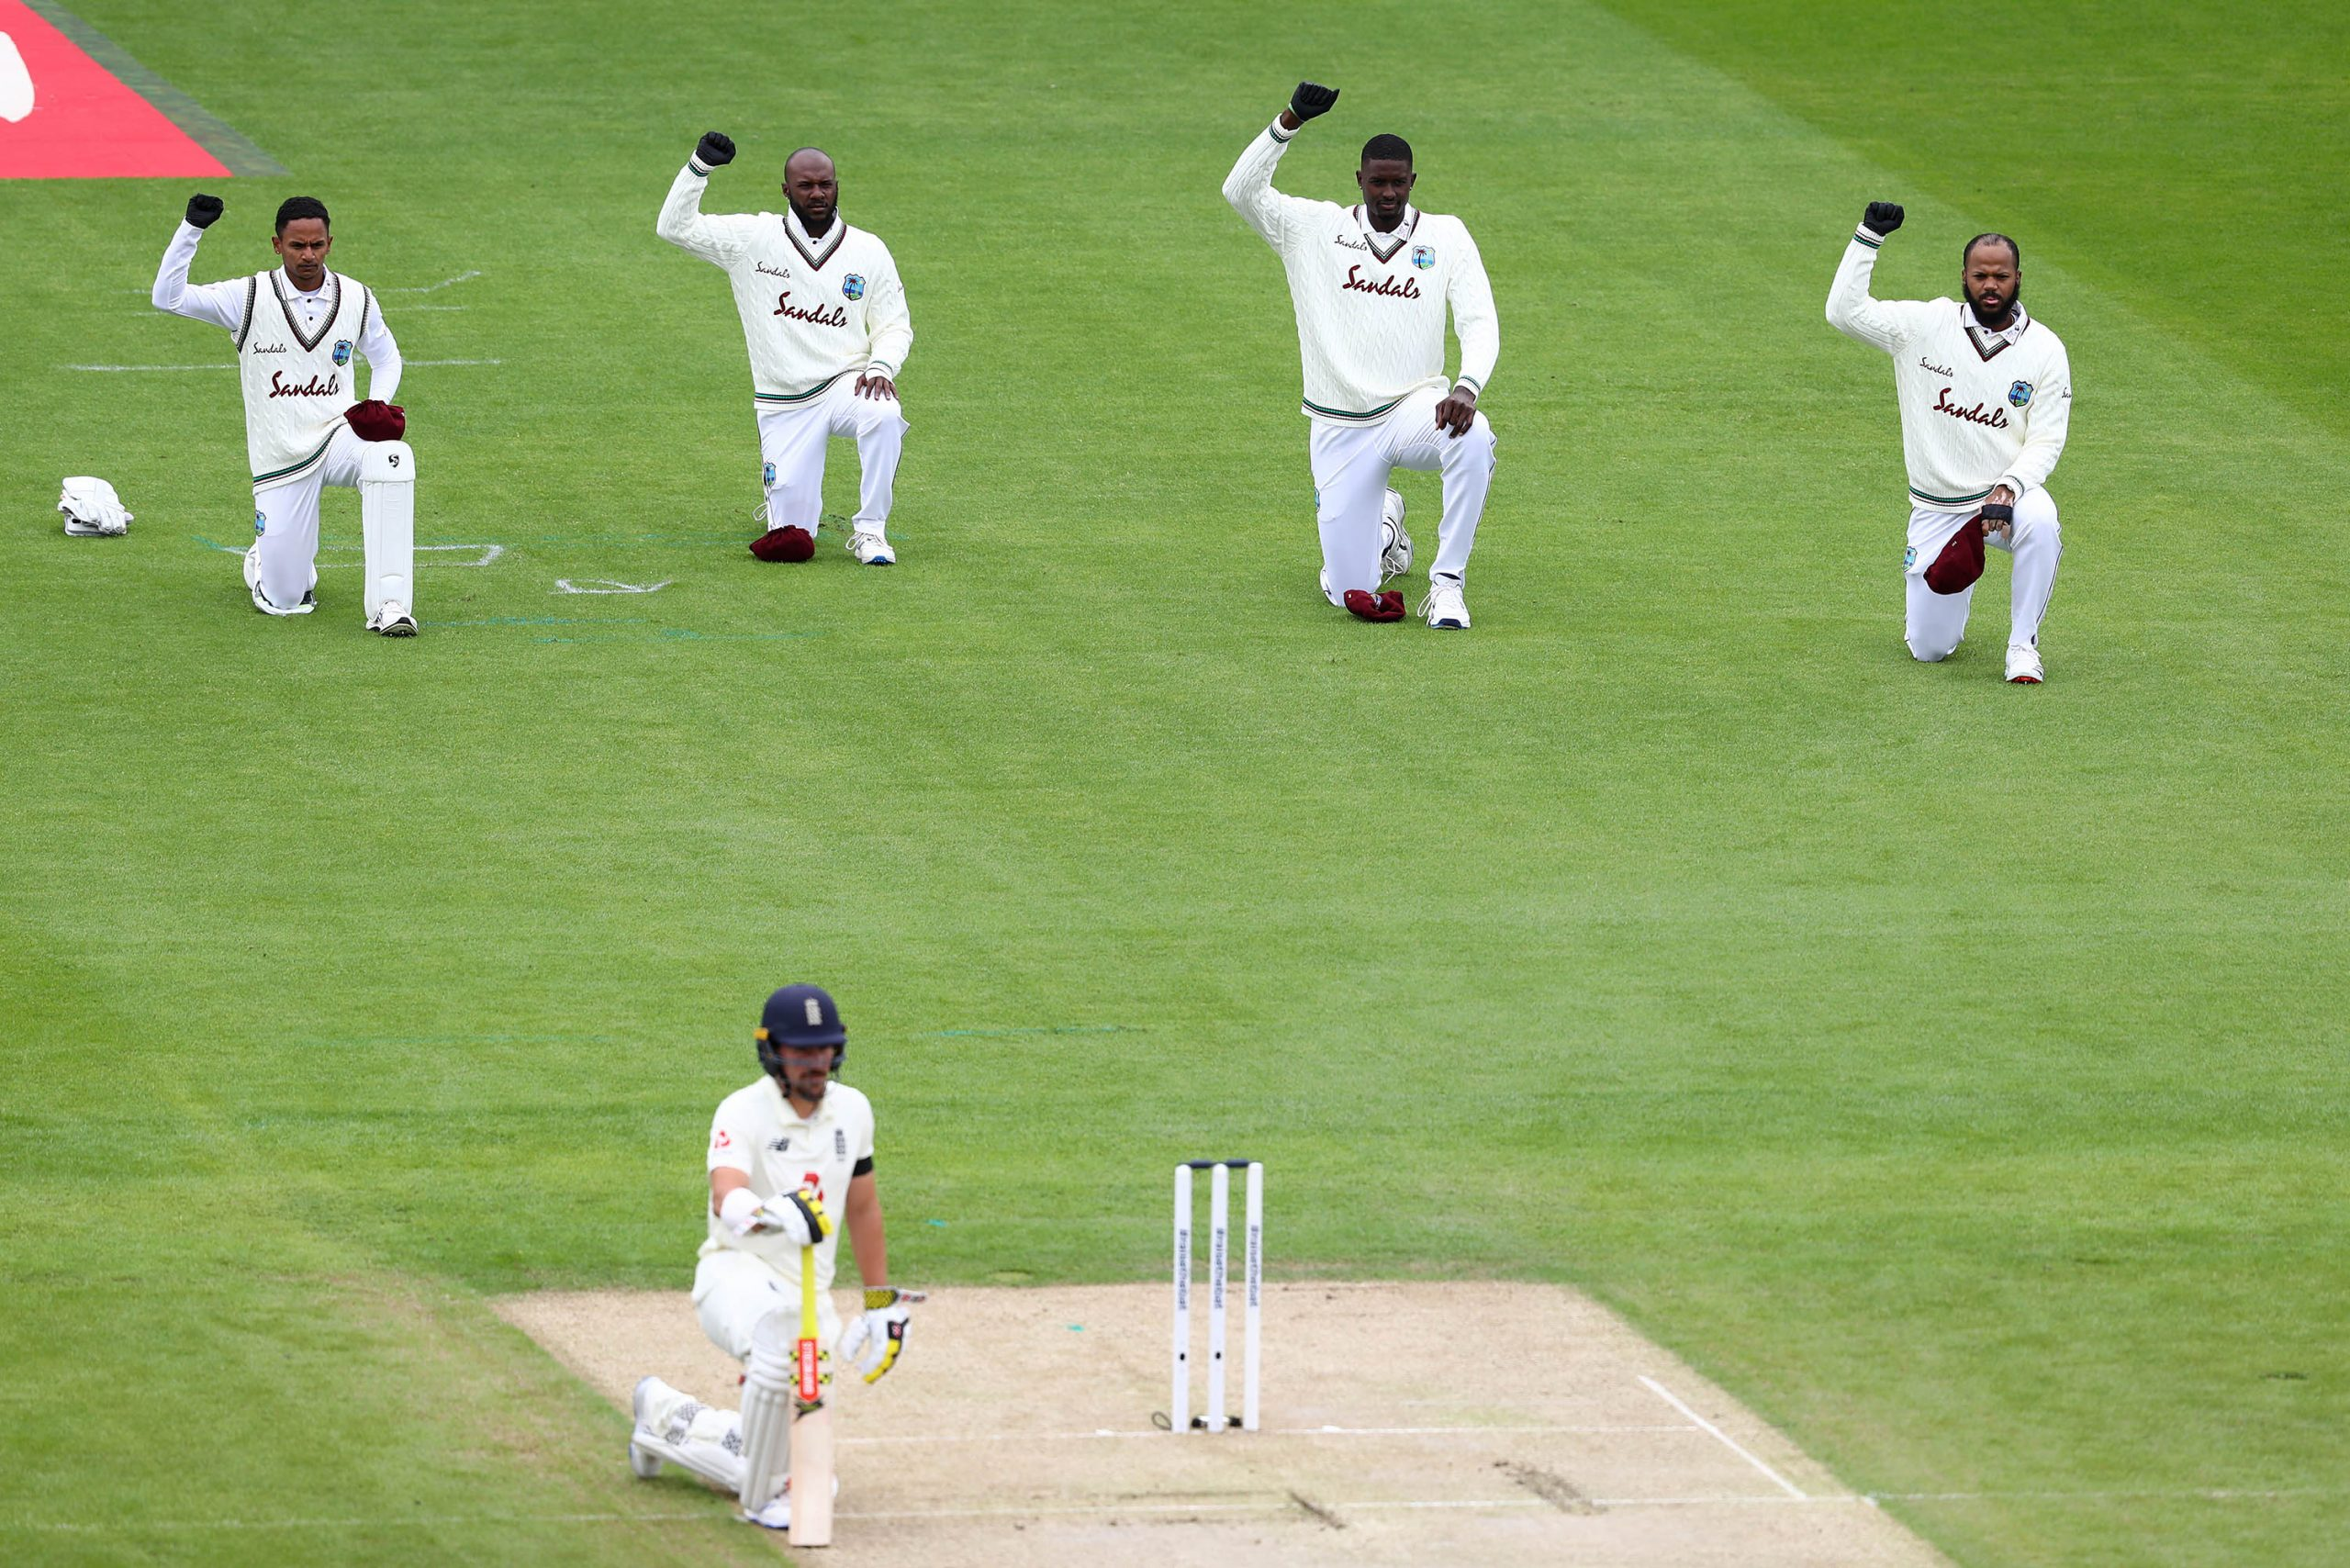 16 July 2020: West Indies cricketers with black gloves on their right hands take a knee in support of the Black Lives Matter movement on day one of the second Test of their #RaiseTheBat series against England at Old Trafford in Manchester, England. (Photograph by Michael Steele/ Getty Images)